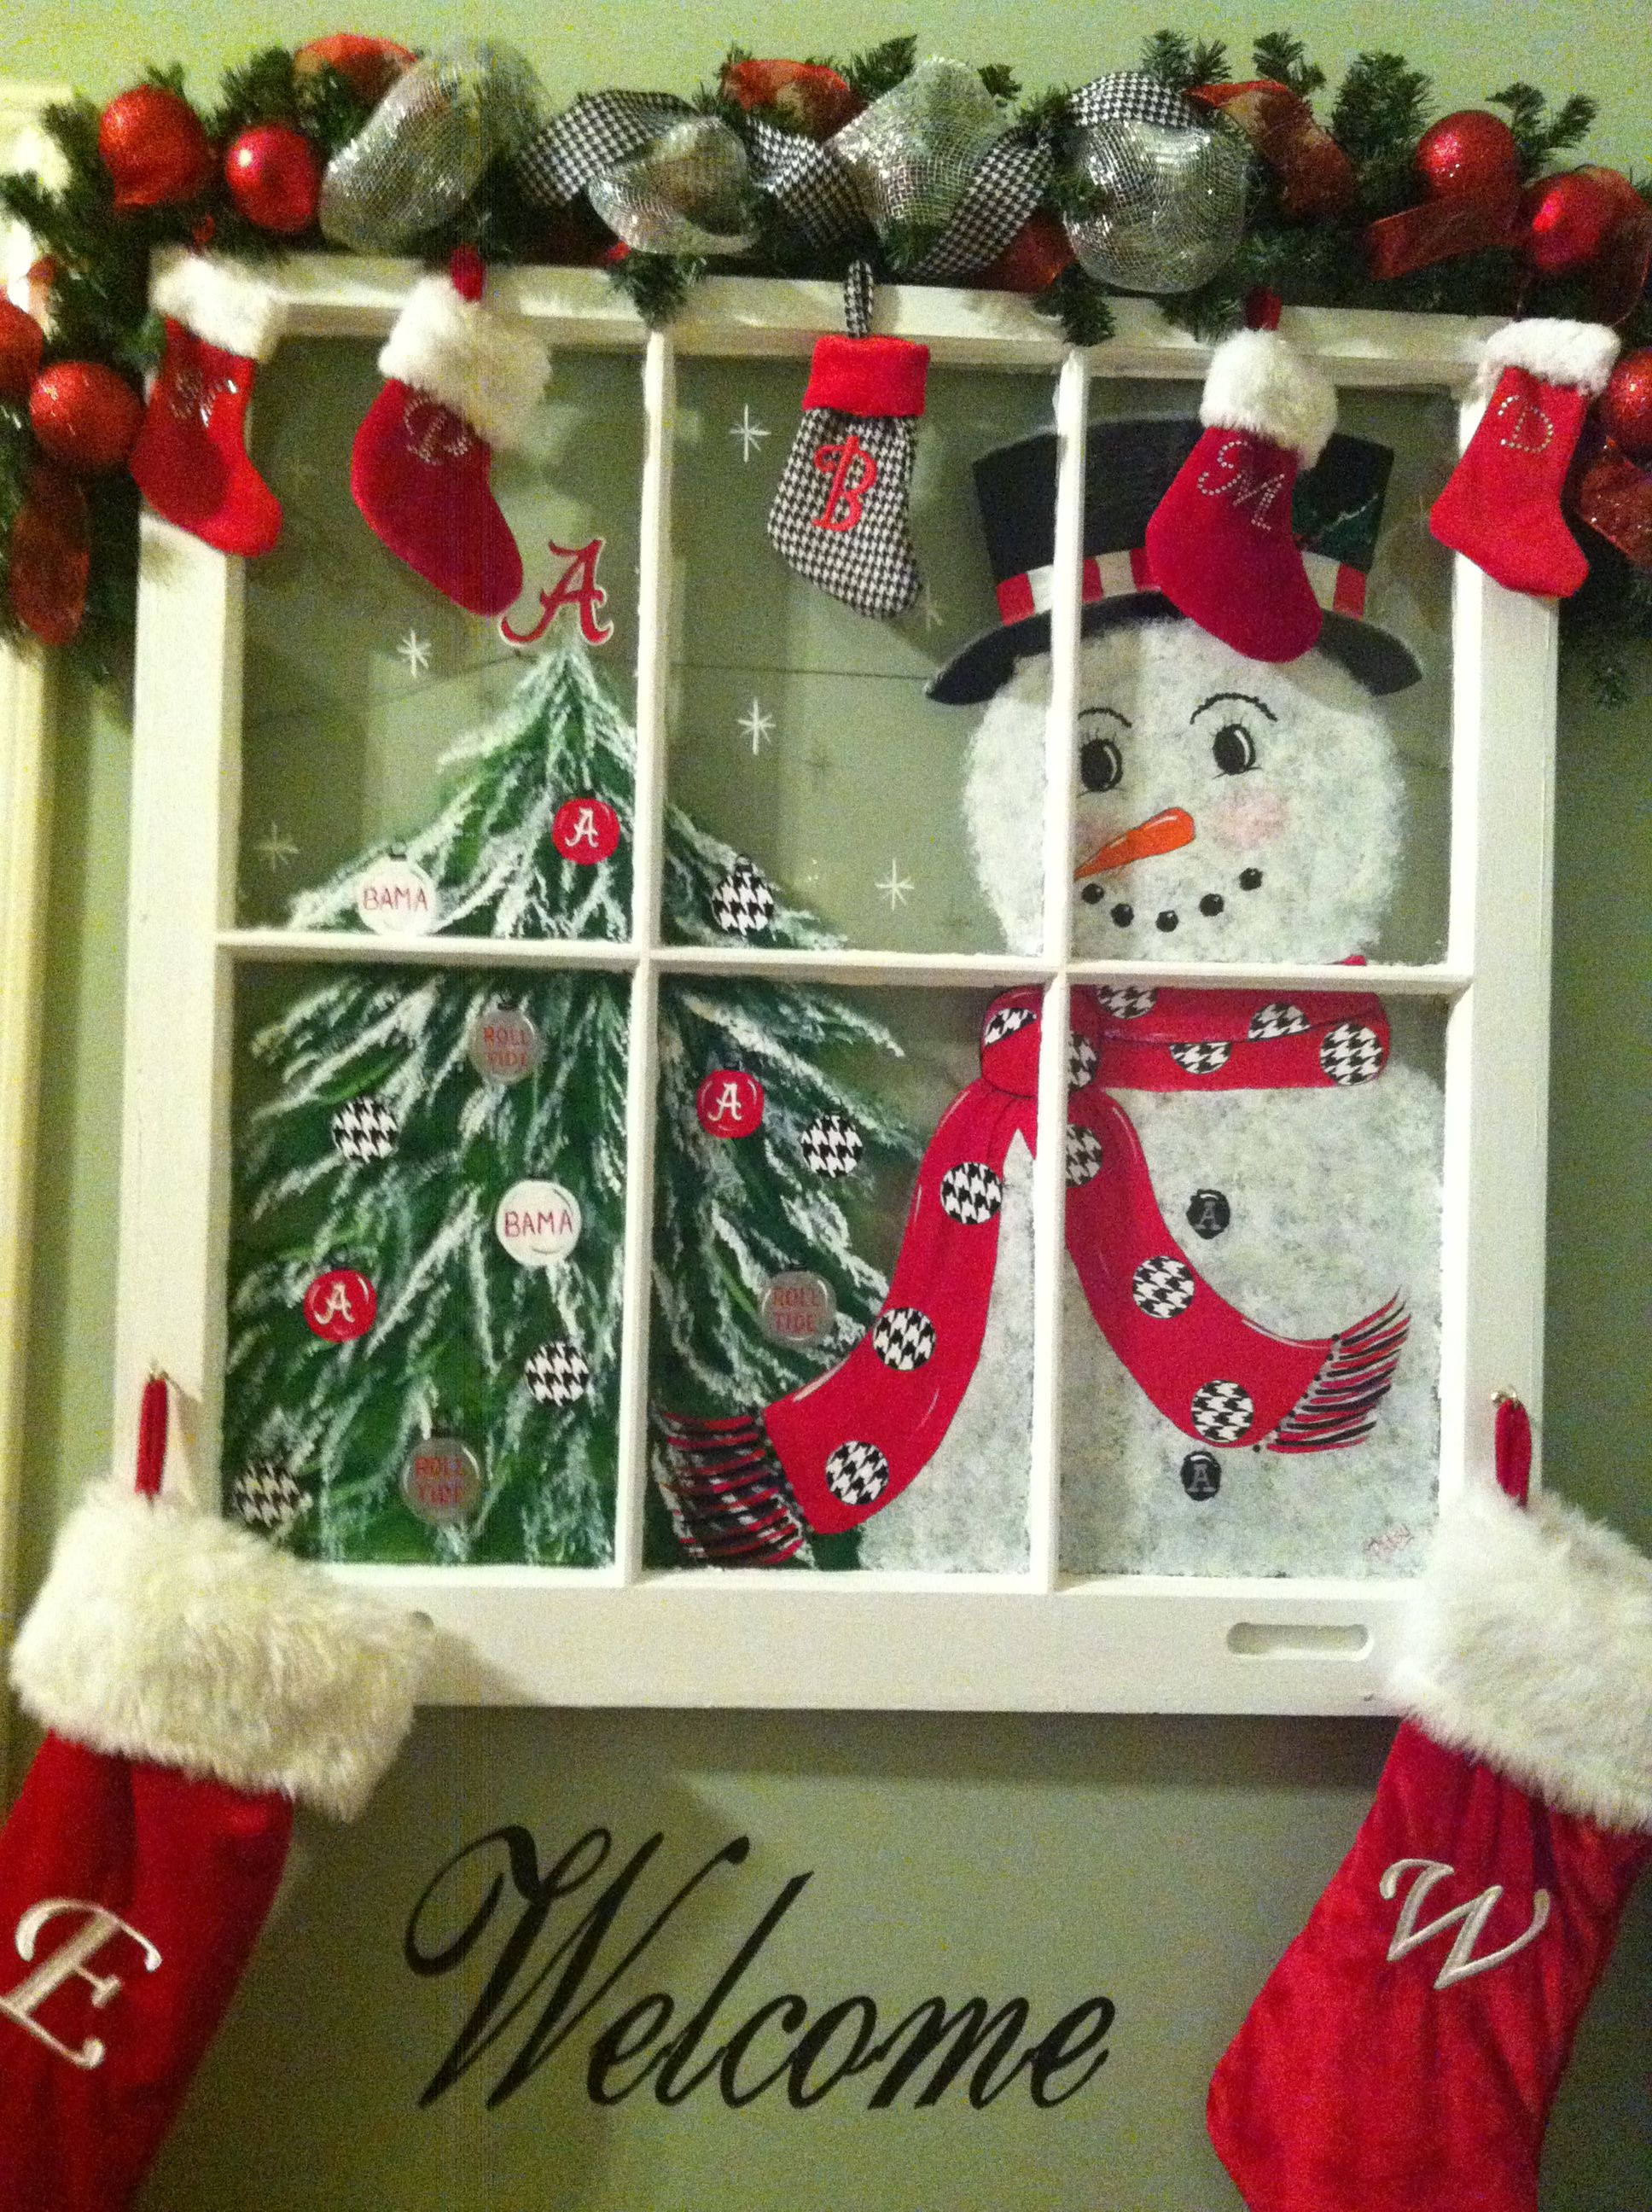 A way to customize a window for the holidays a valance